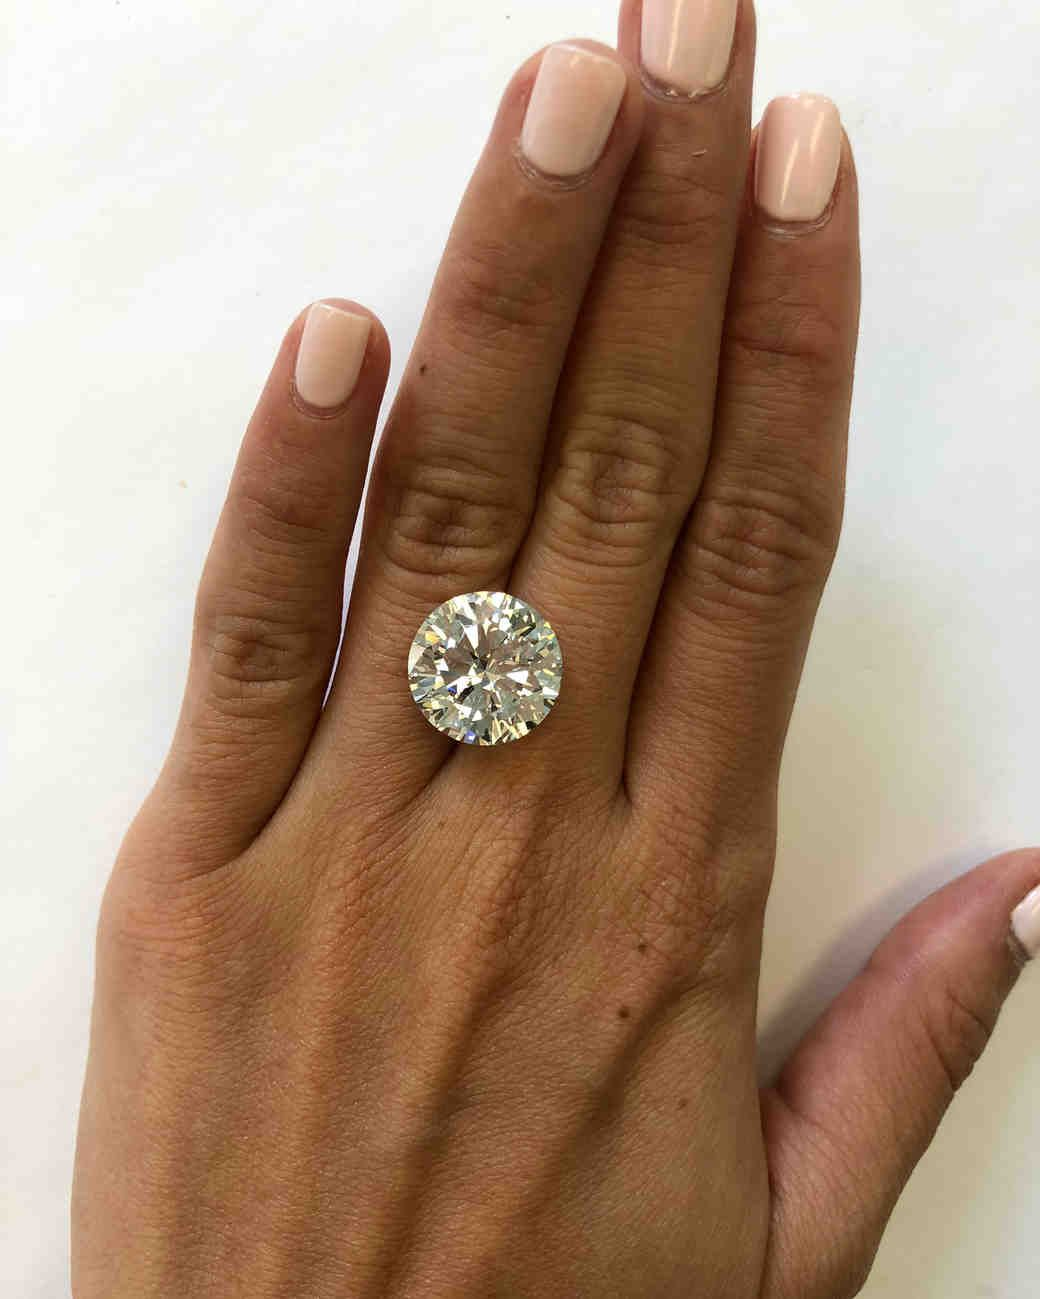 This Is What A Diamond Looks Like At Every Size From 5 Carats To 10 10 Carat Diamond Ring Diamond Carat Size Custom Diamond Engagement Rings